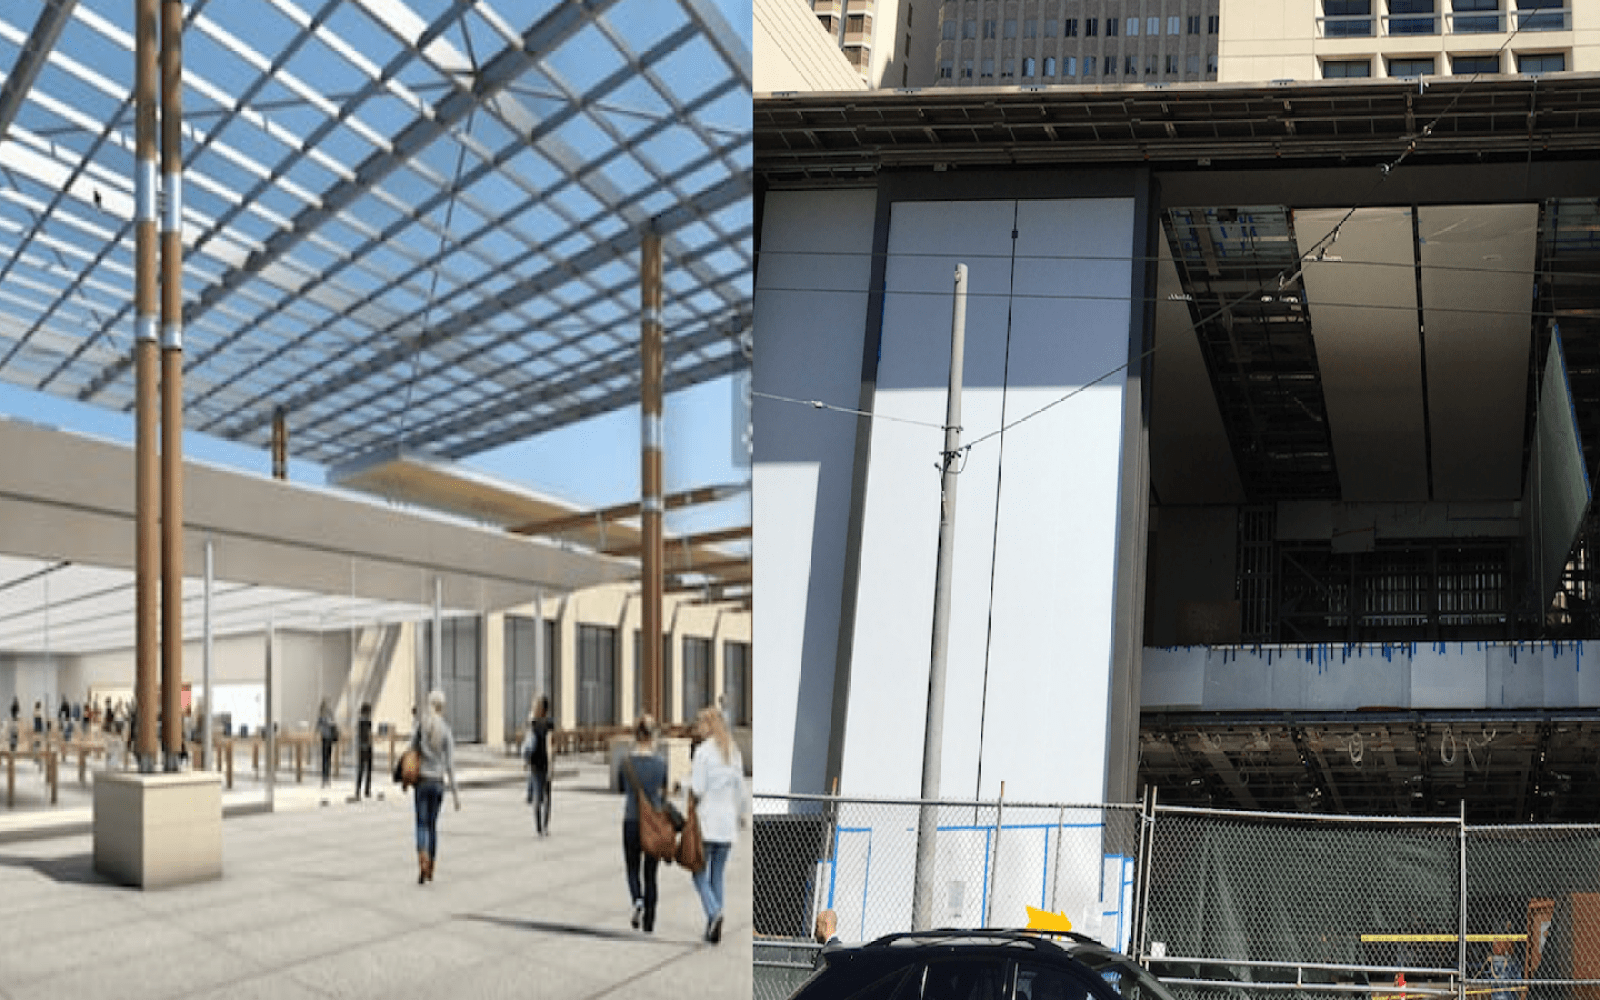 Apple Terrasse Du Port Marseille Apple Store In Marseille France Set To Open May 14 As